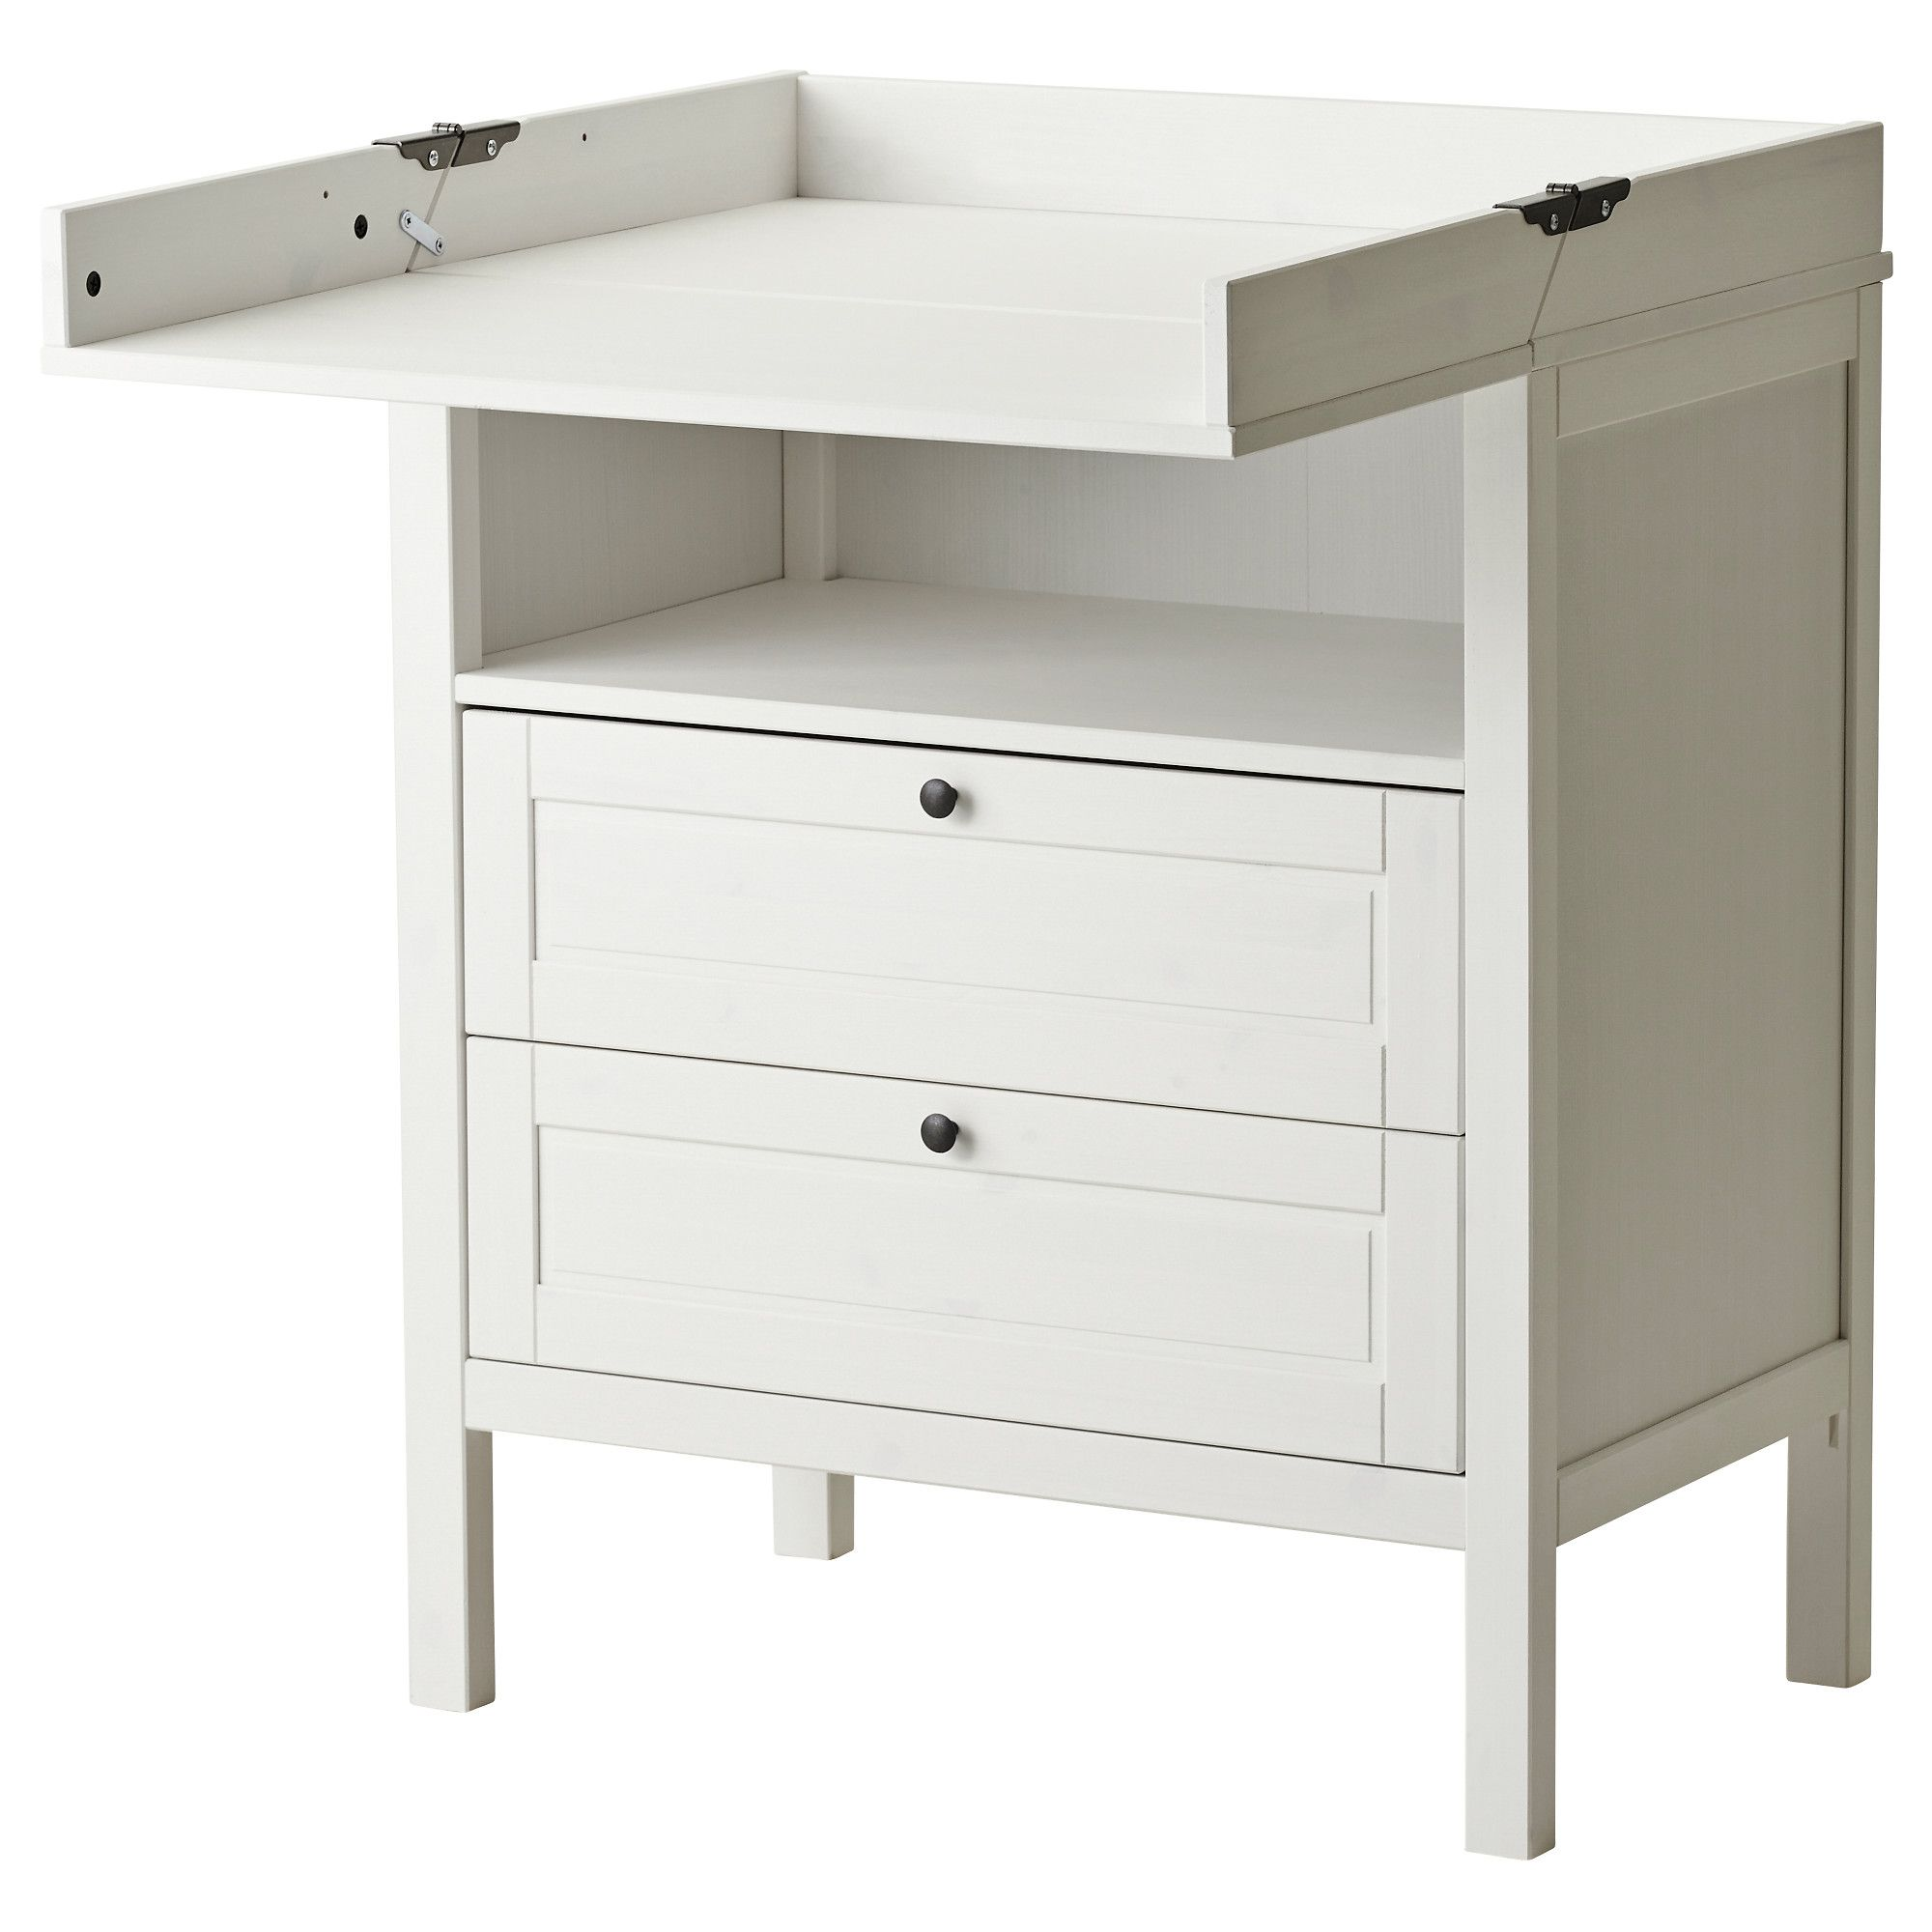 IKEA SUNDVIK Changing Table/chest Of Drawers Comfortable Height For Changing  The Baby.